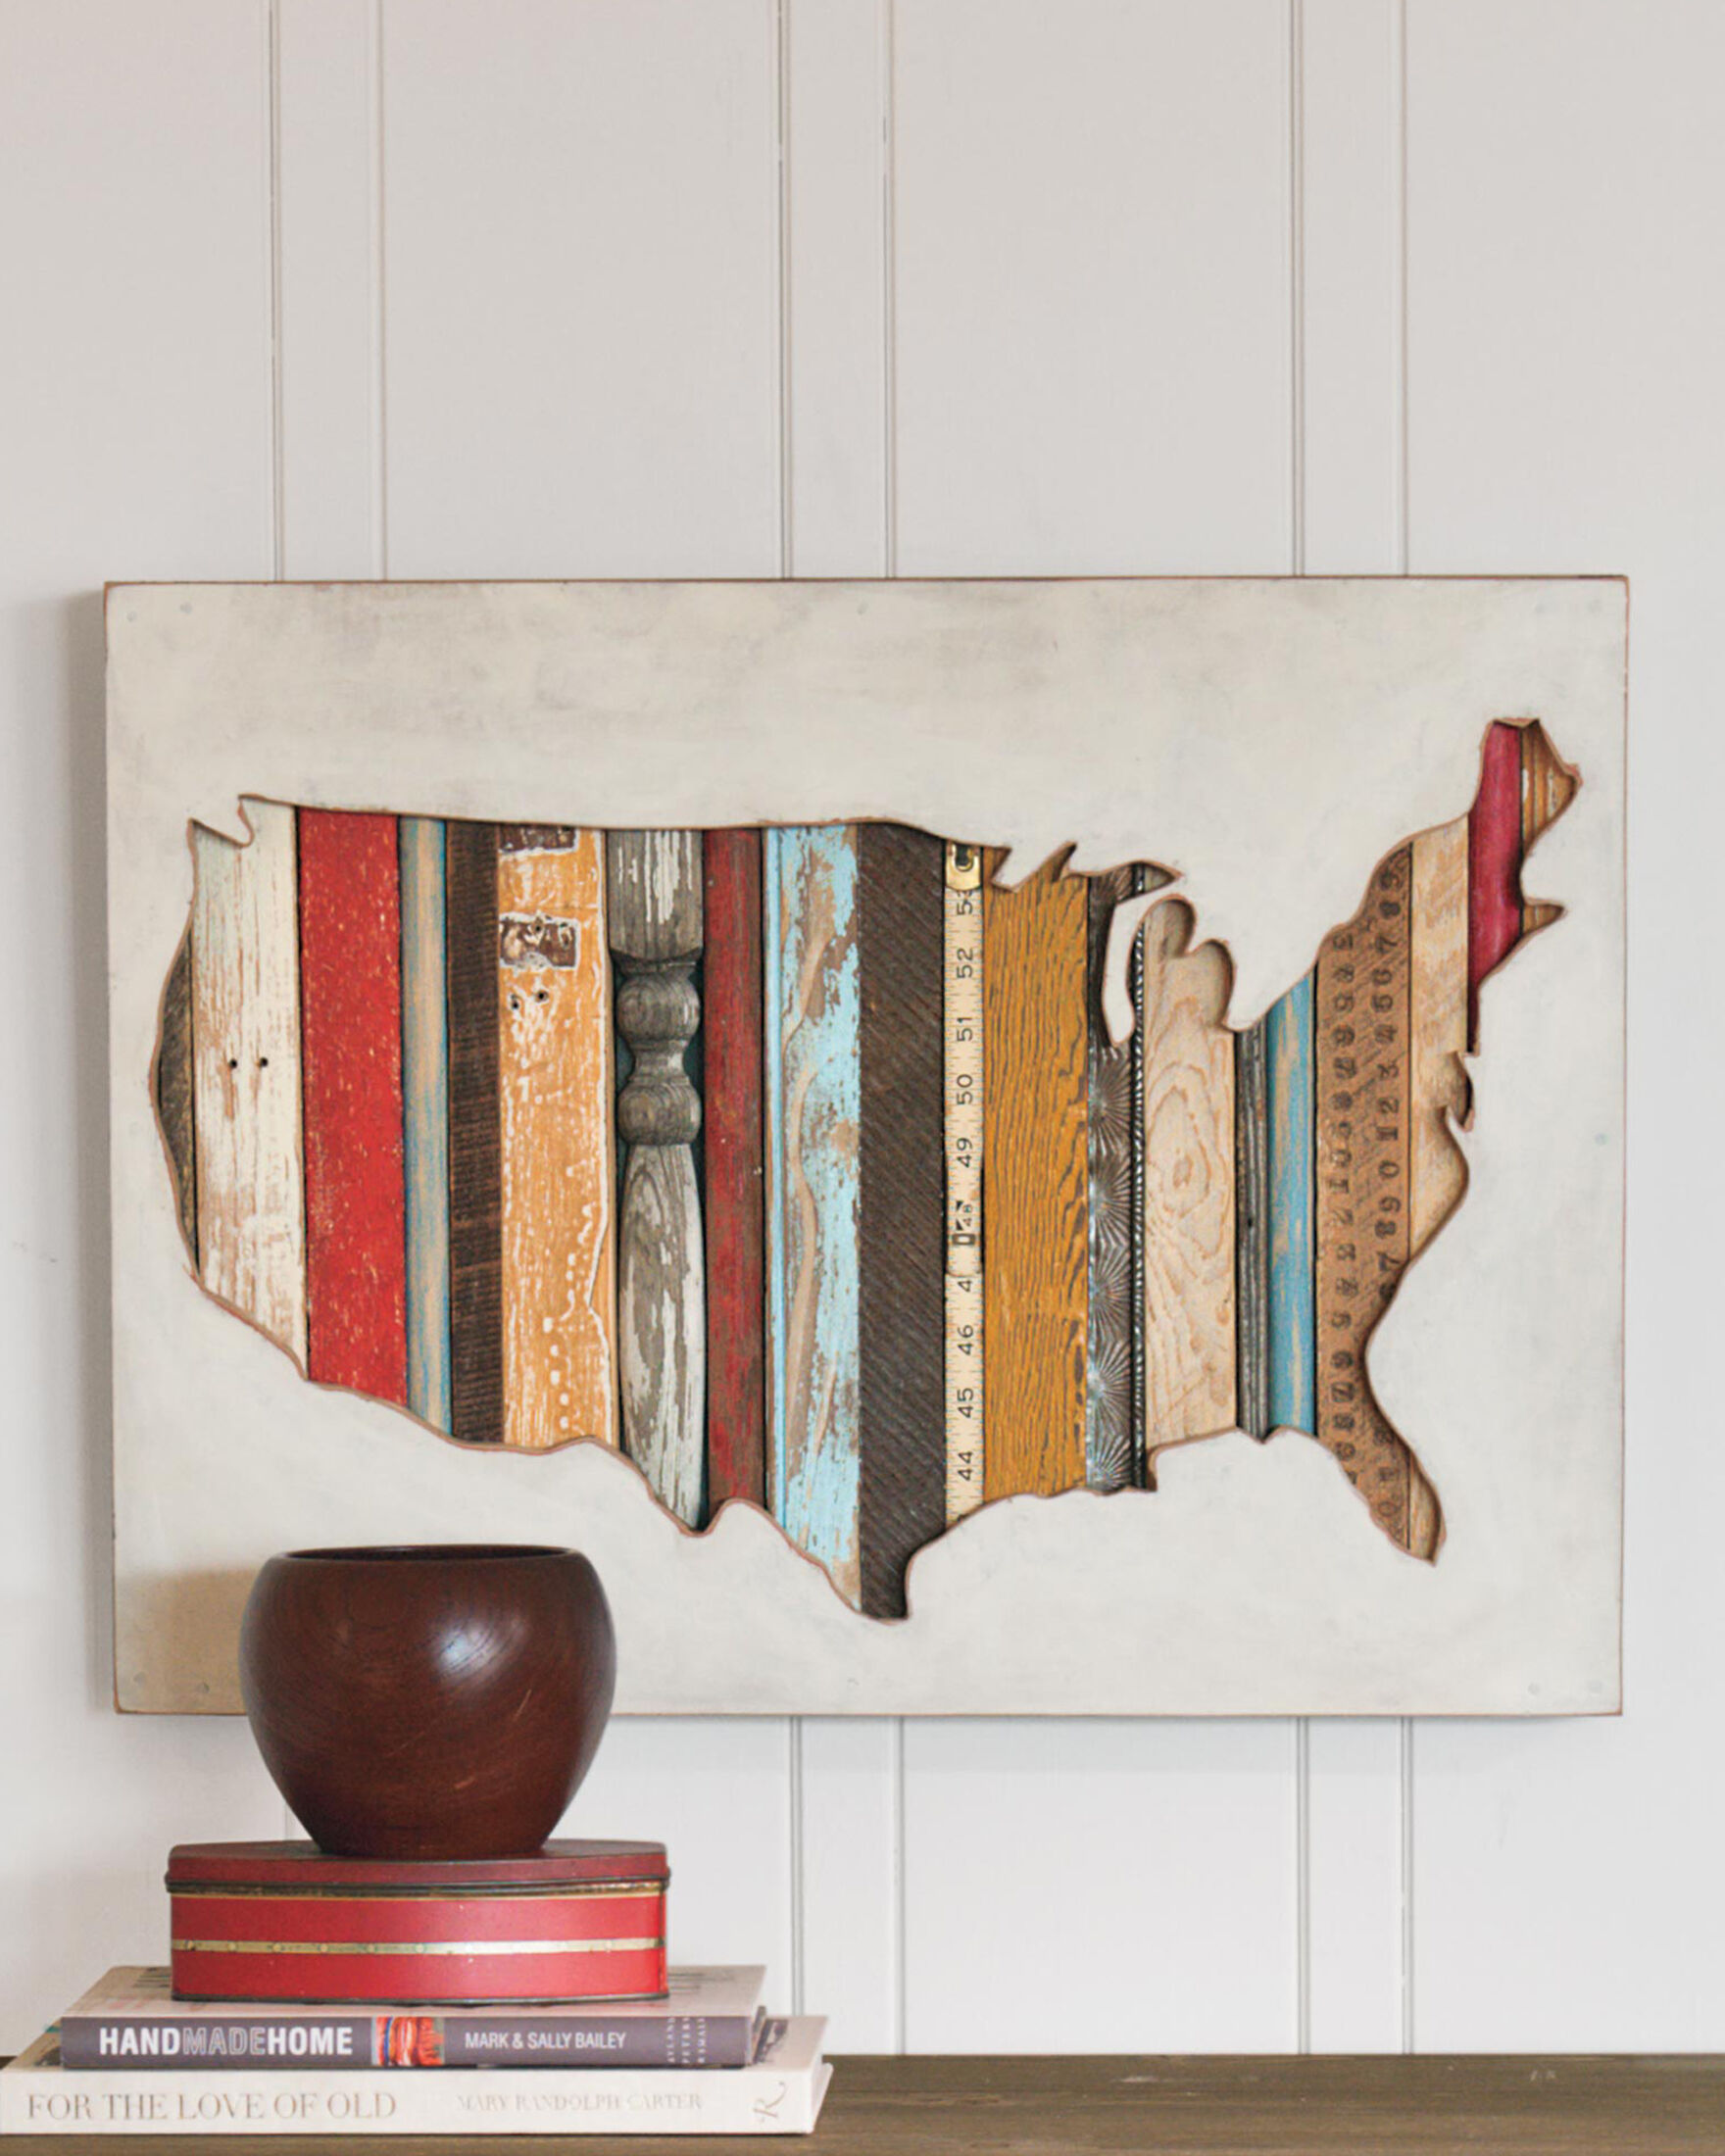 USA MAP WALL ART